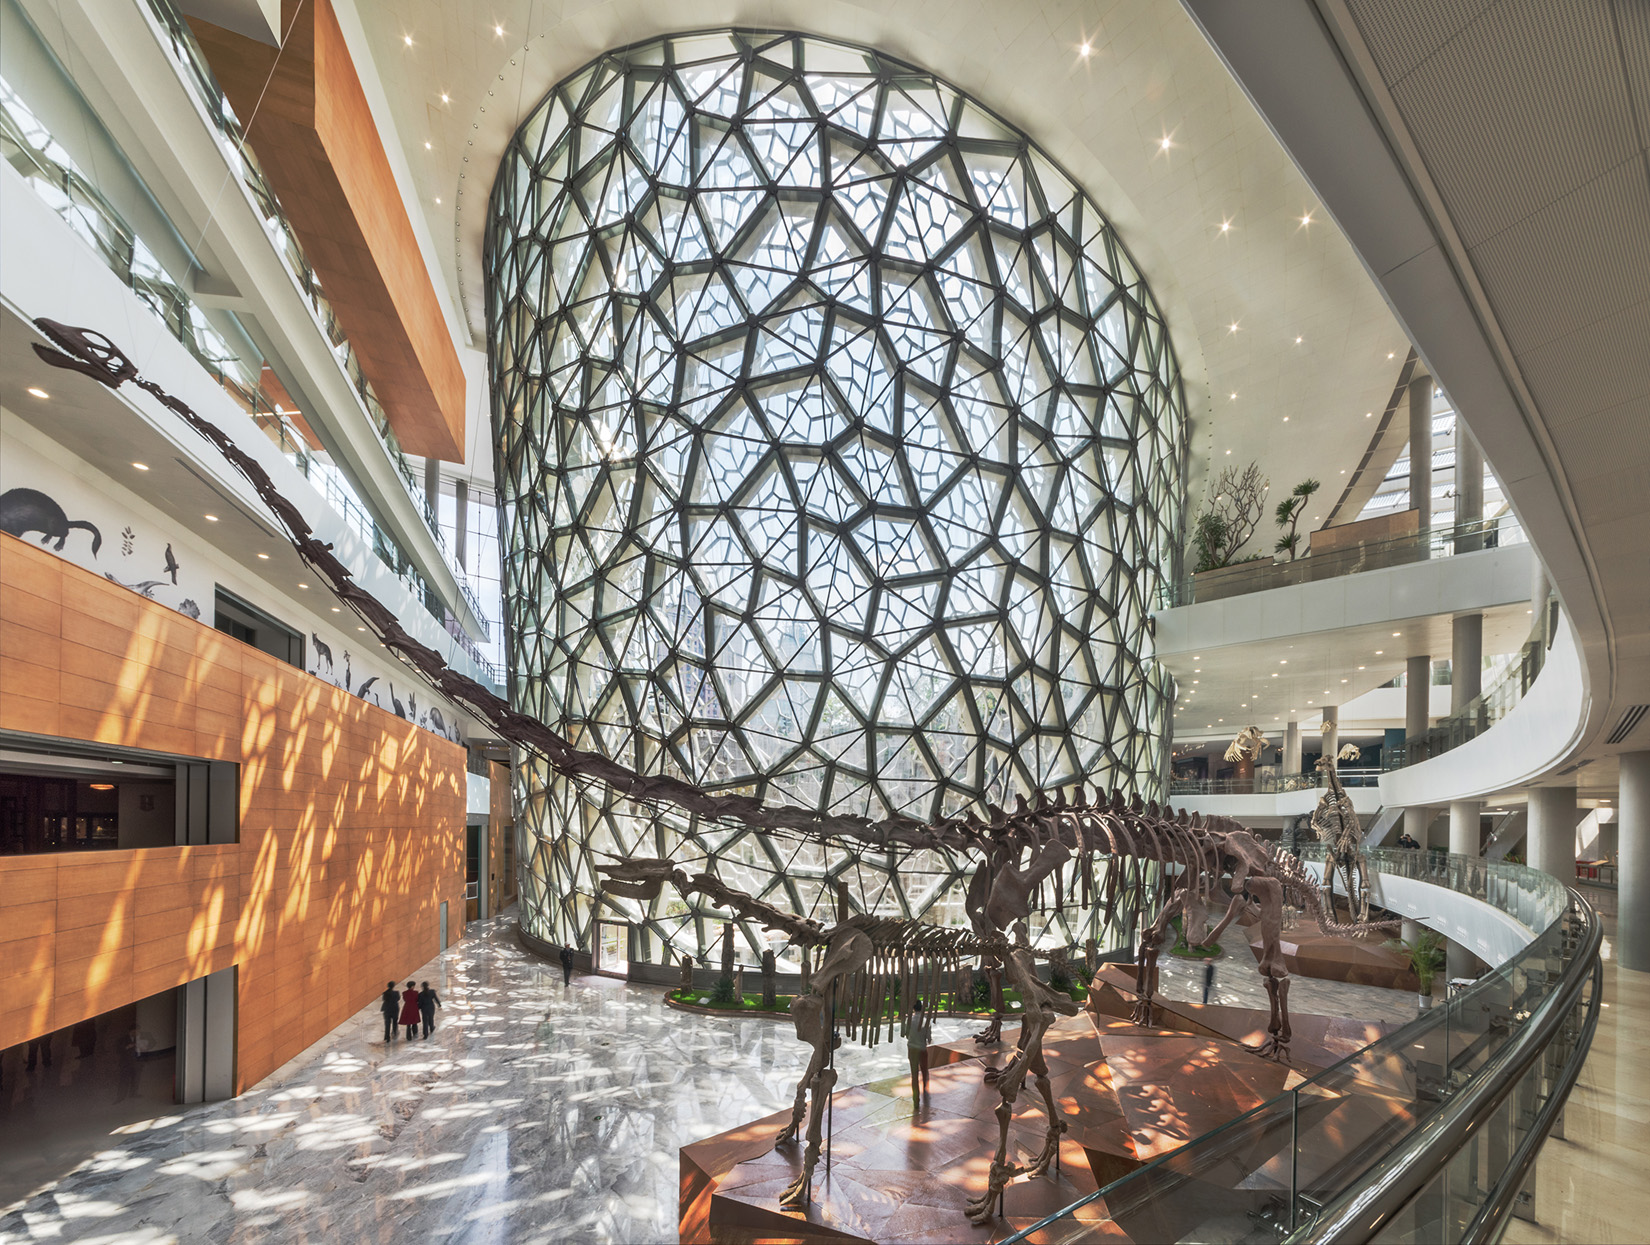 Shanghai Natural History Museum 2015 Design Excellence